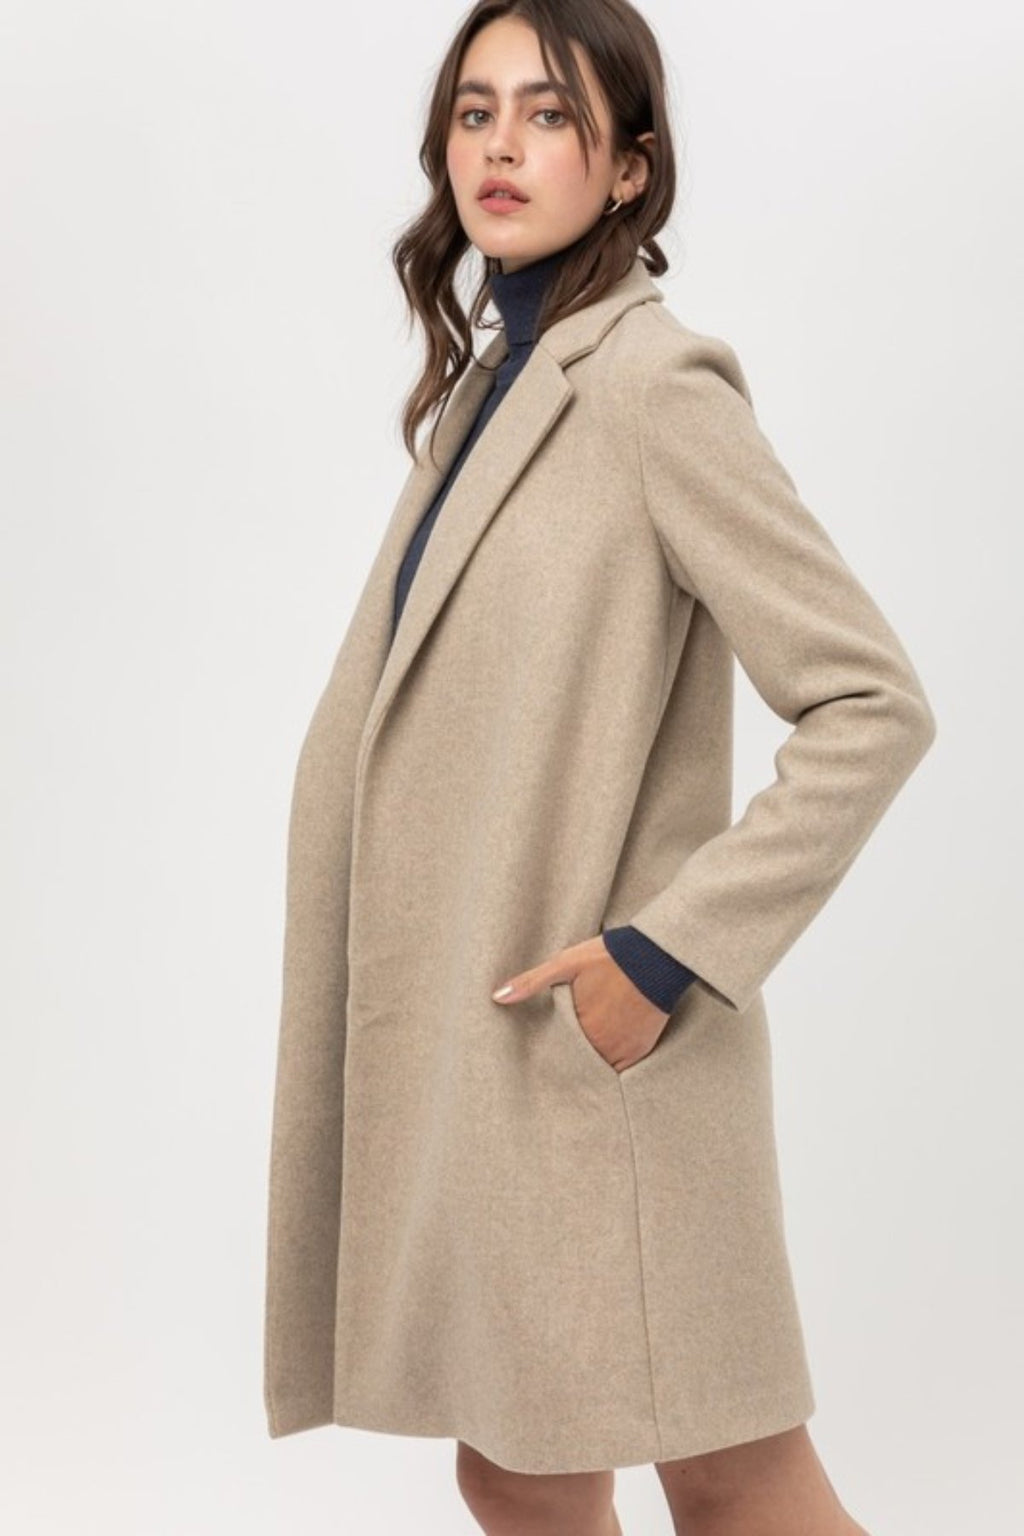 RISKY BUSINESS LONG LINE COAT - [jayden_p]